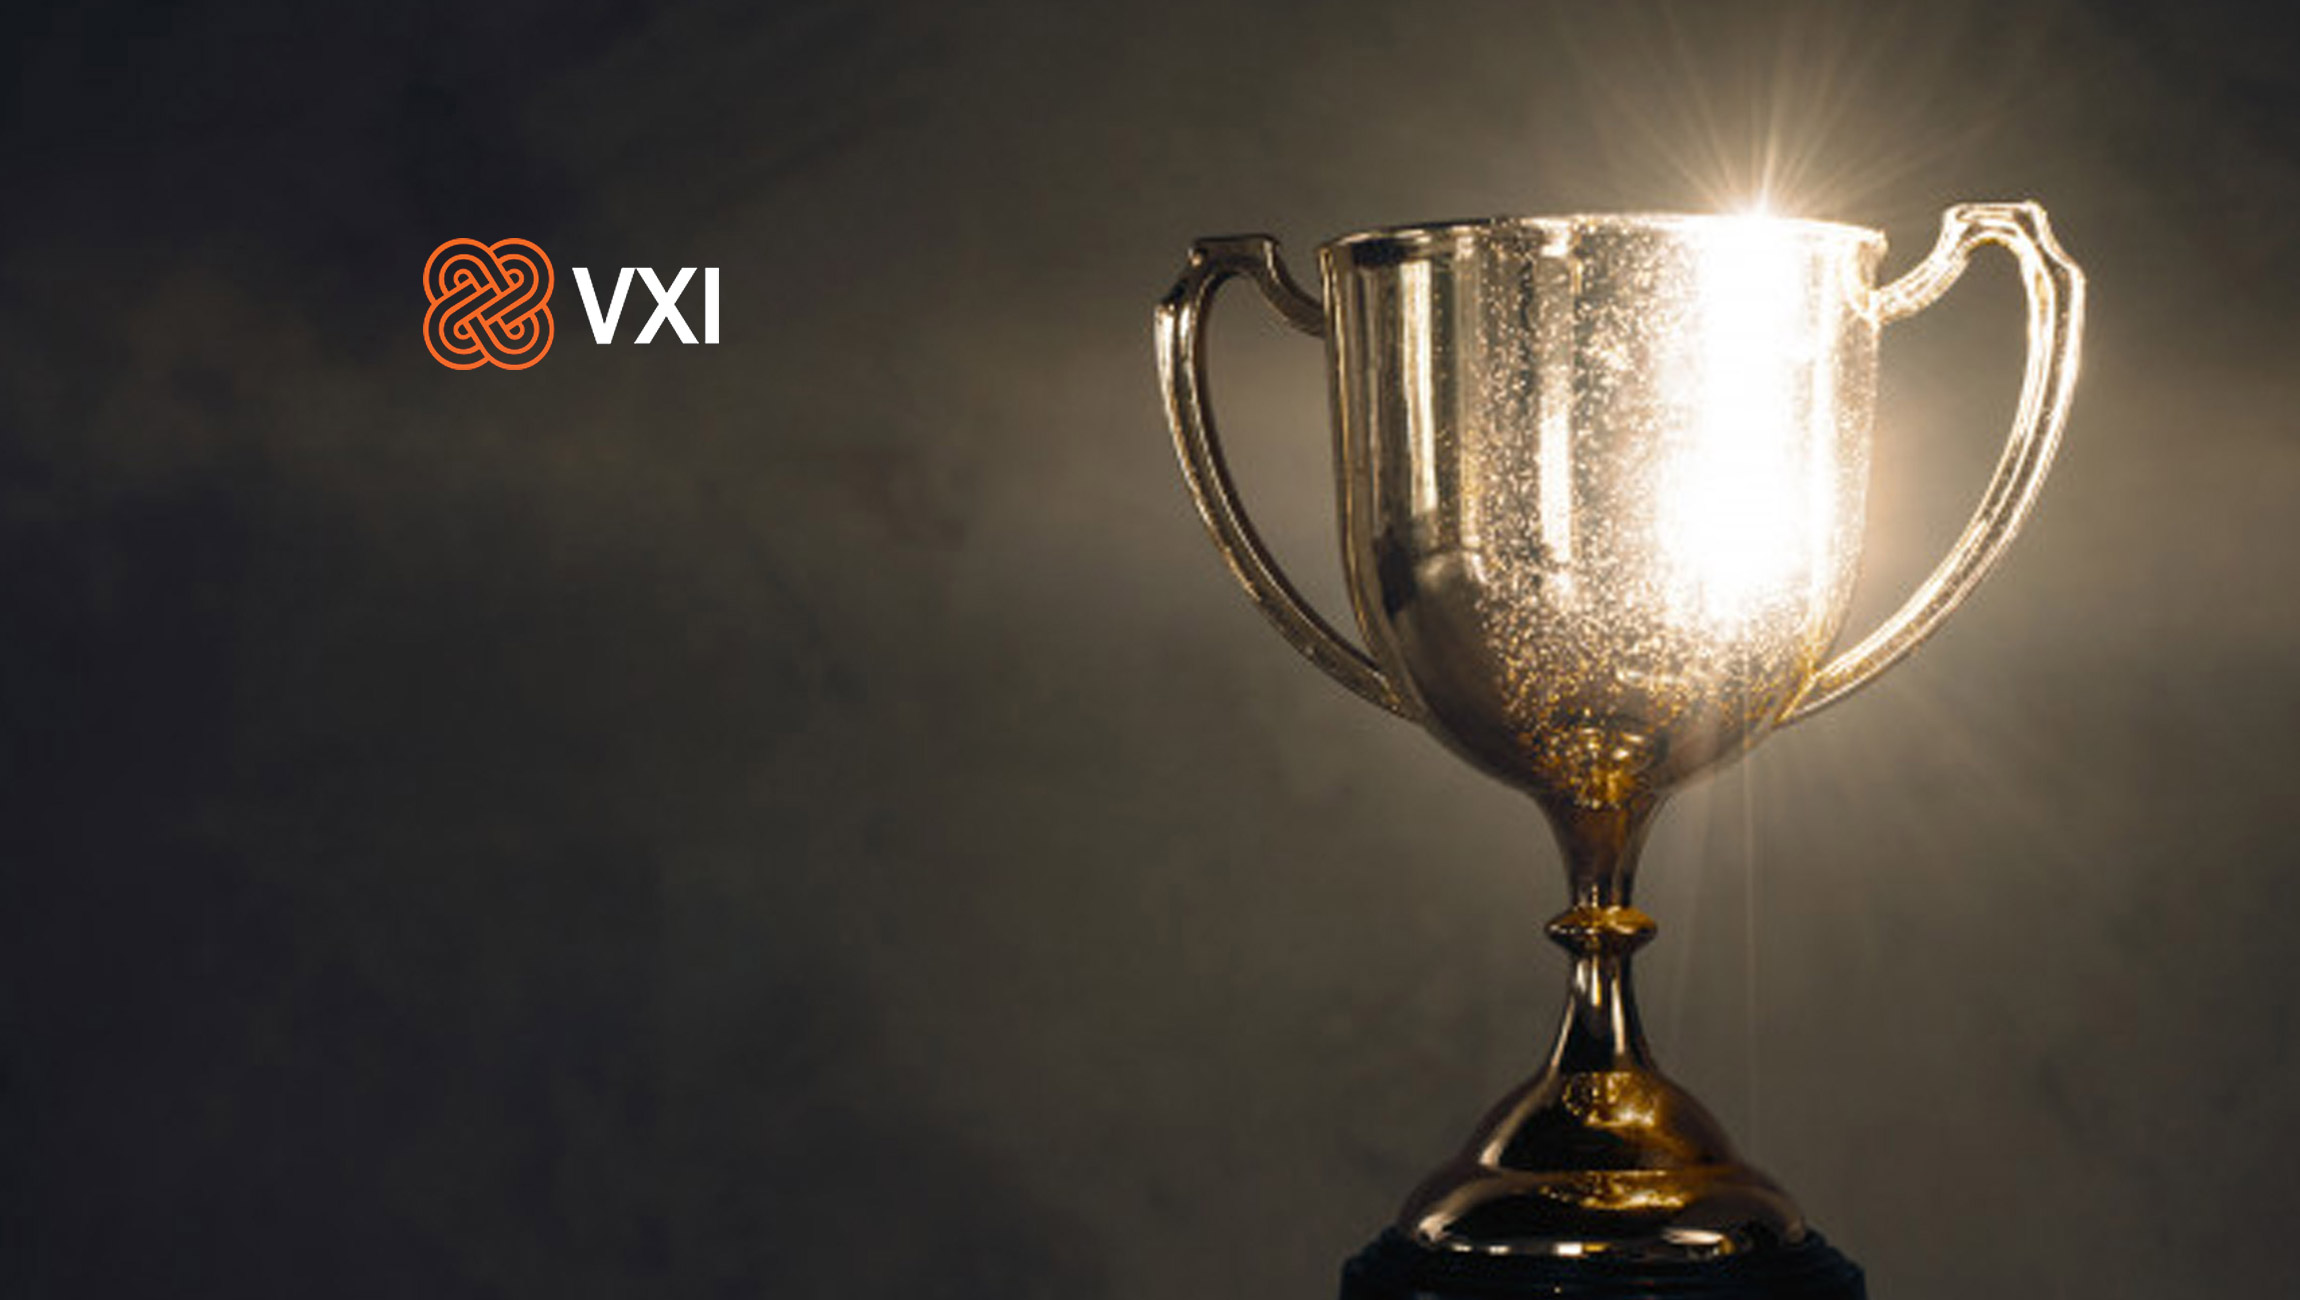 VXI Wins Grand Stevie® Award for Sales and Customer Service